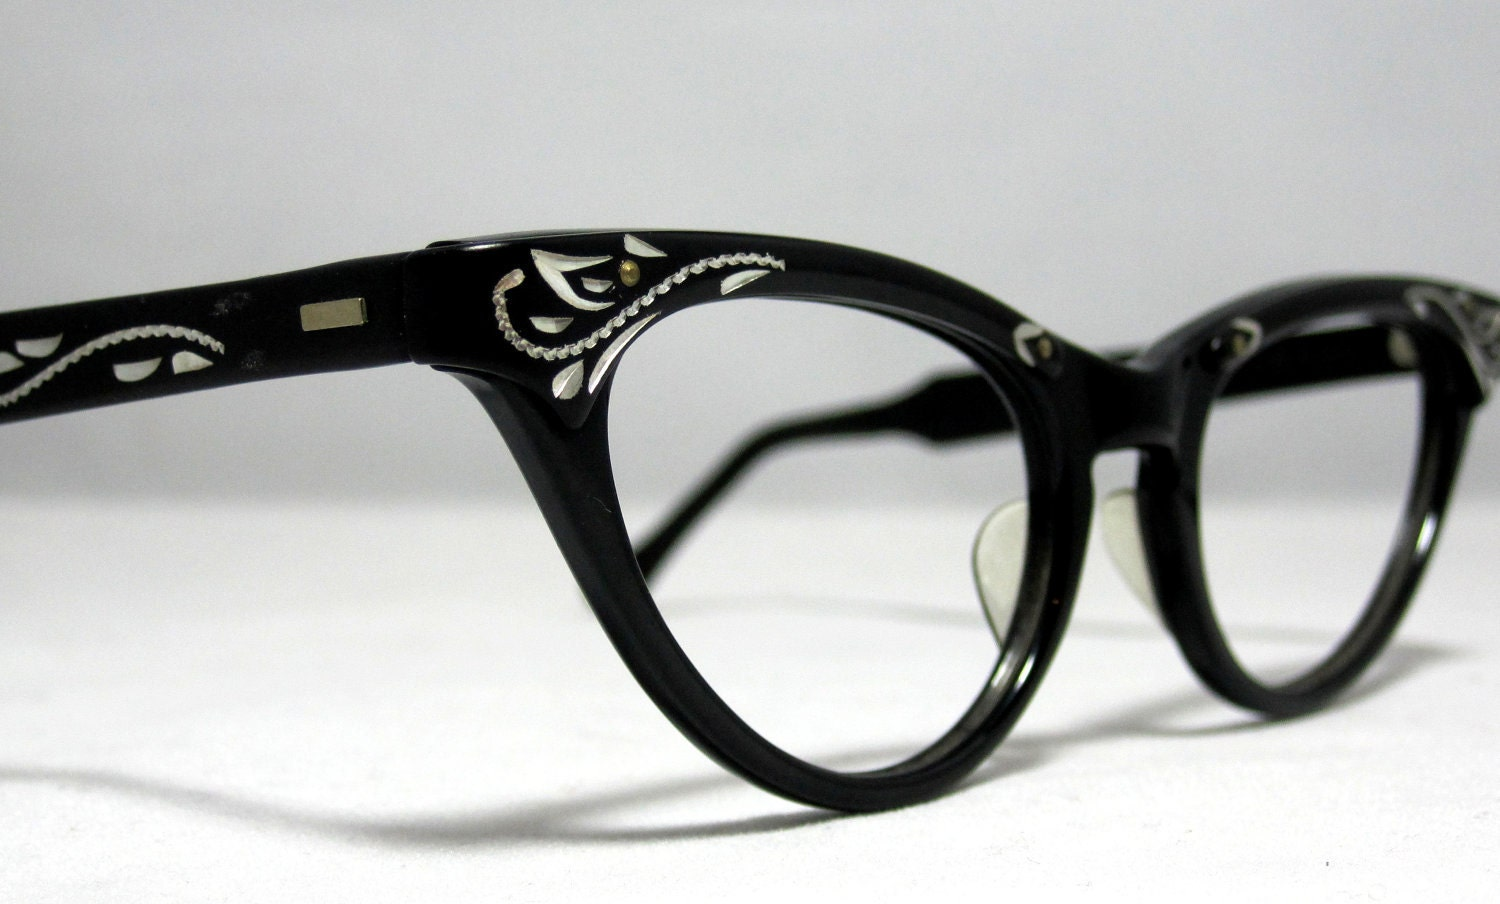 Black Frame Glasses Images : Vintage Cat Eye Glasses Frames. Black and Silver with Etched